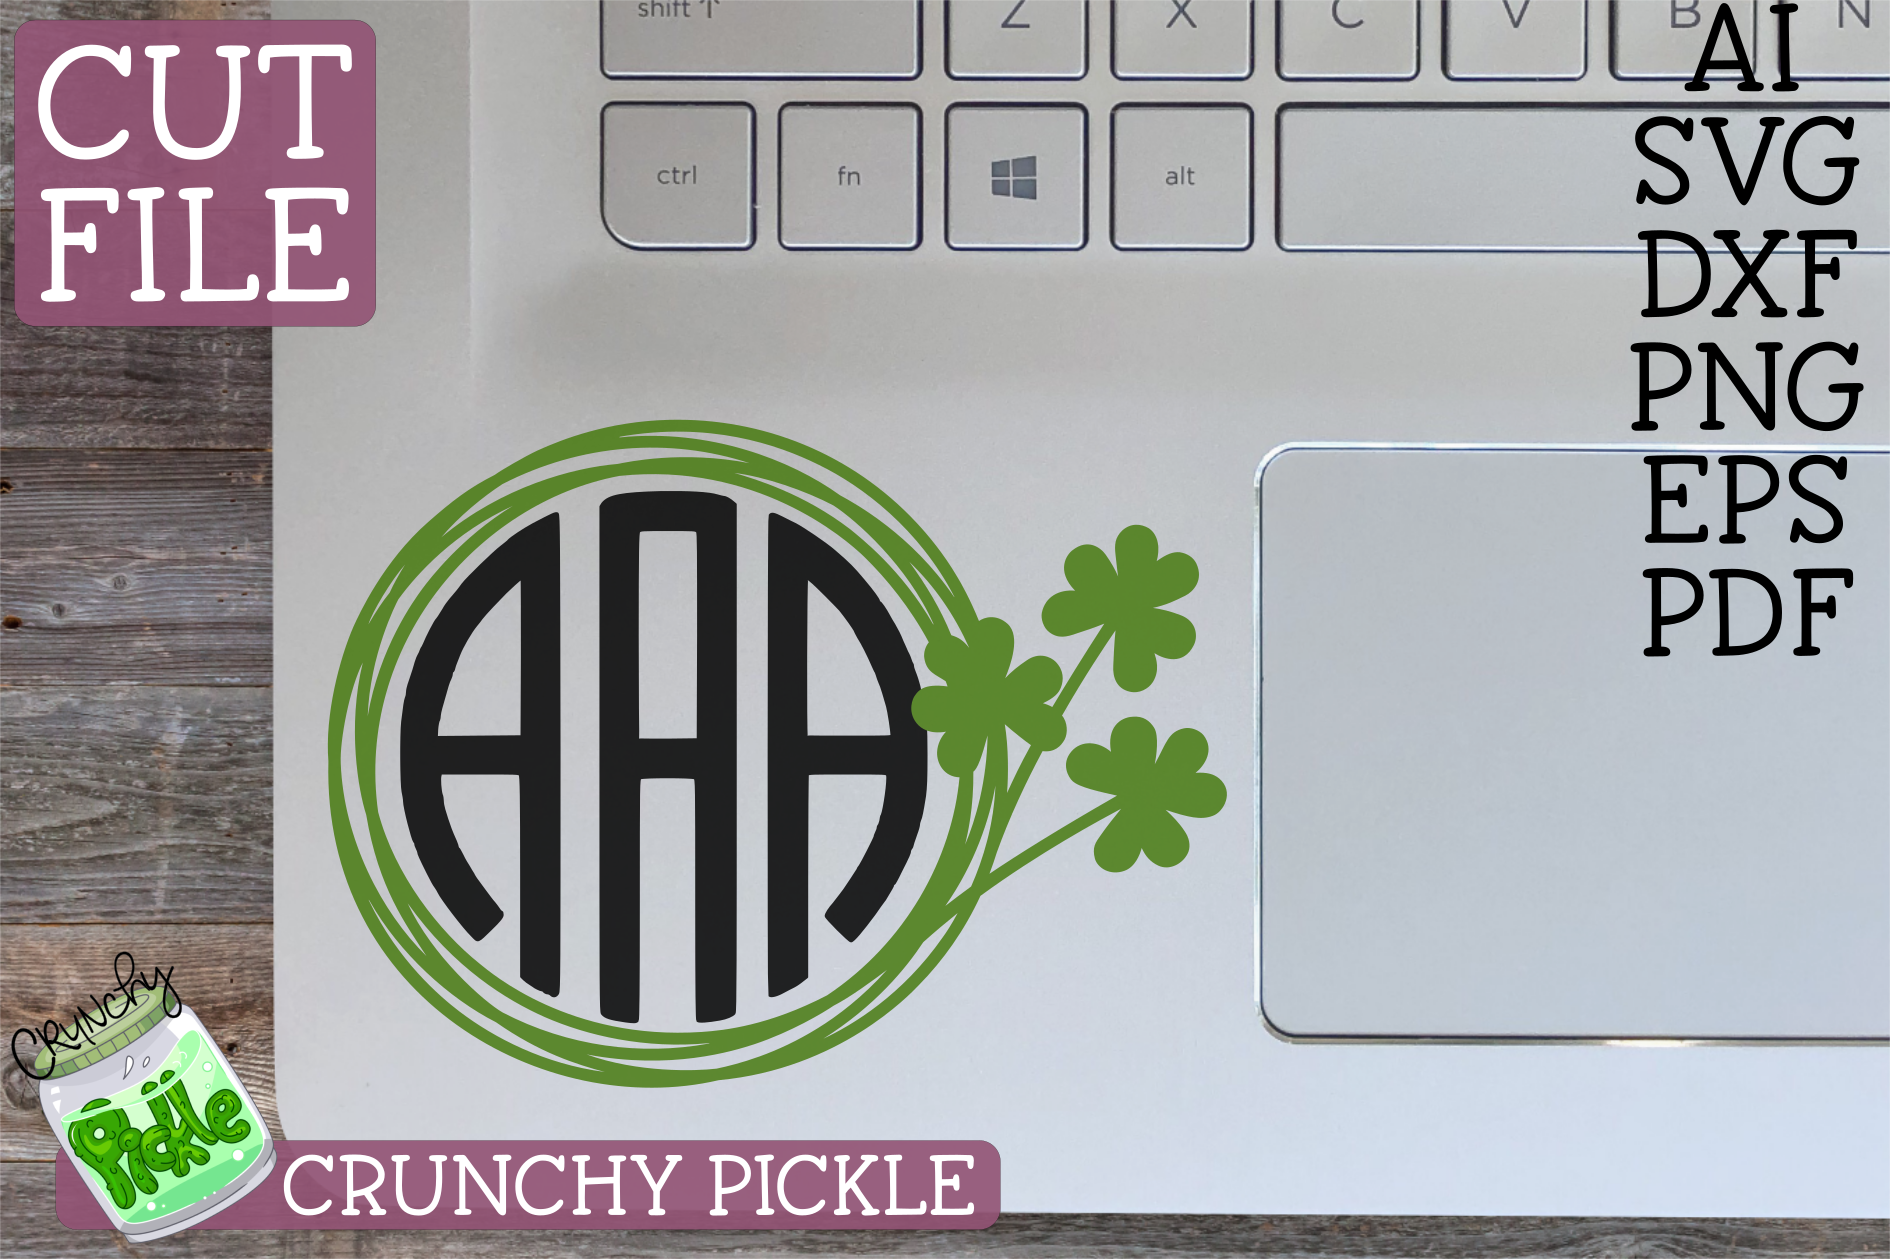 St Paddy Monograms - St Patrick's Day SVG File Bundle example image 3